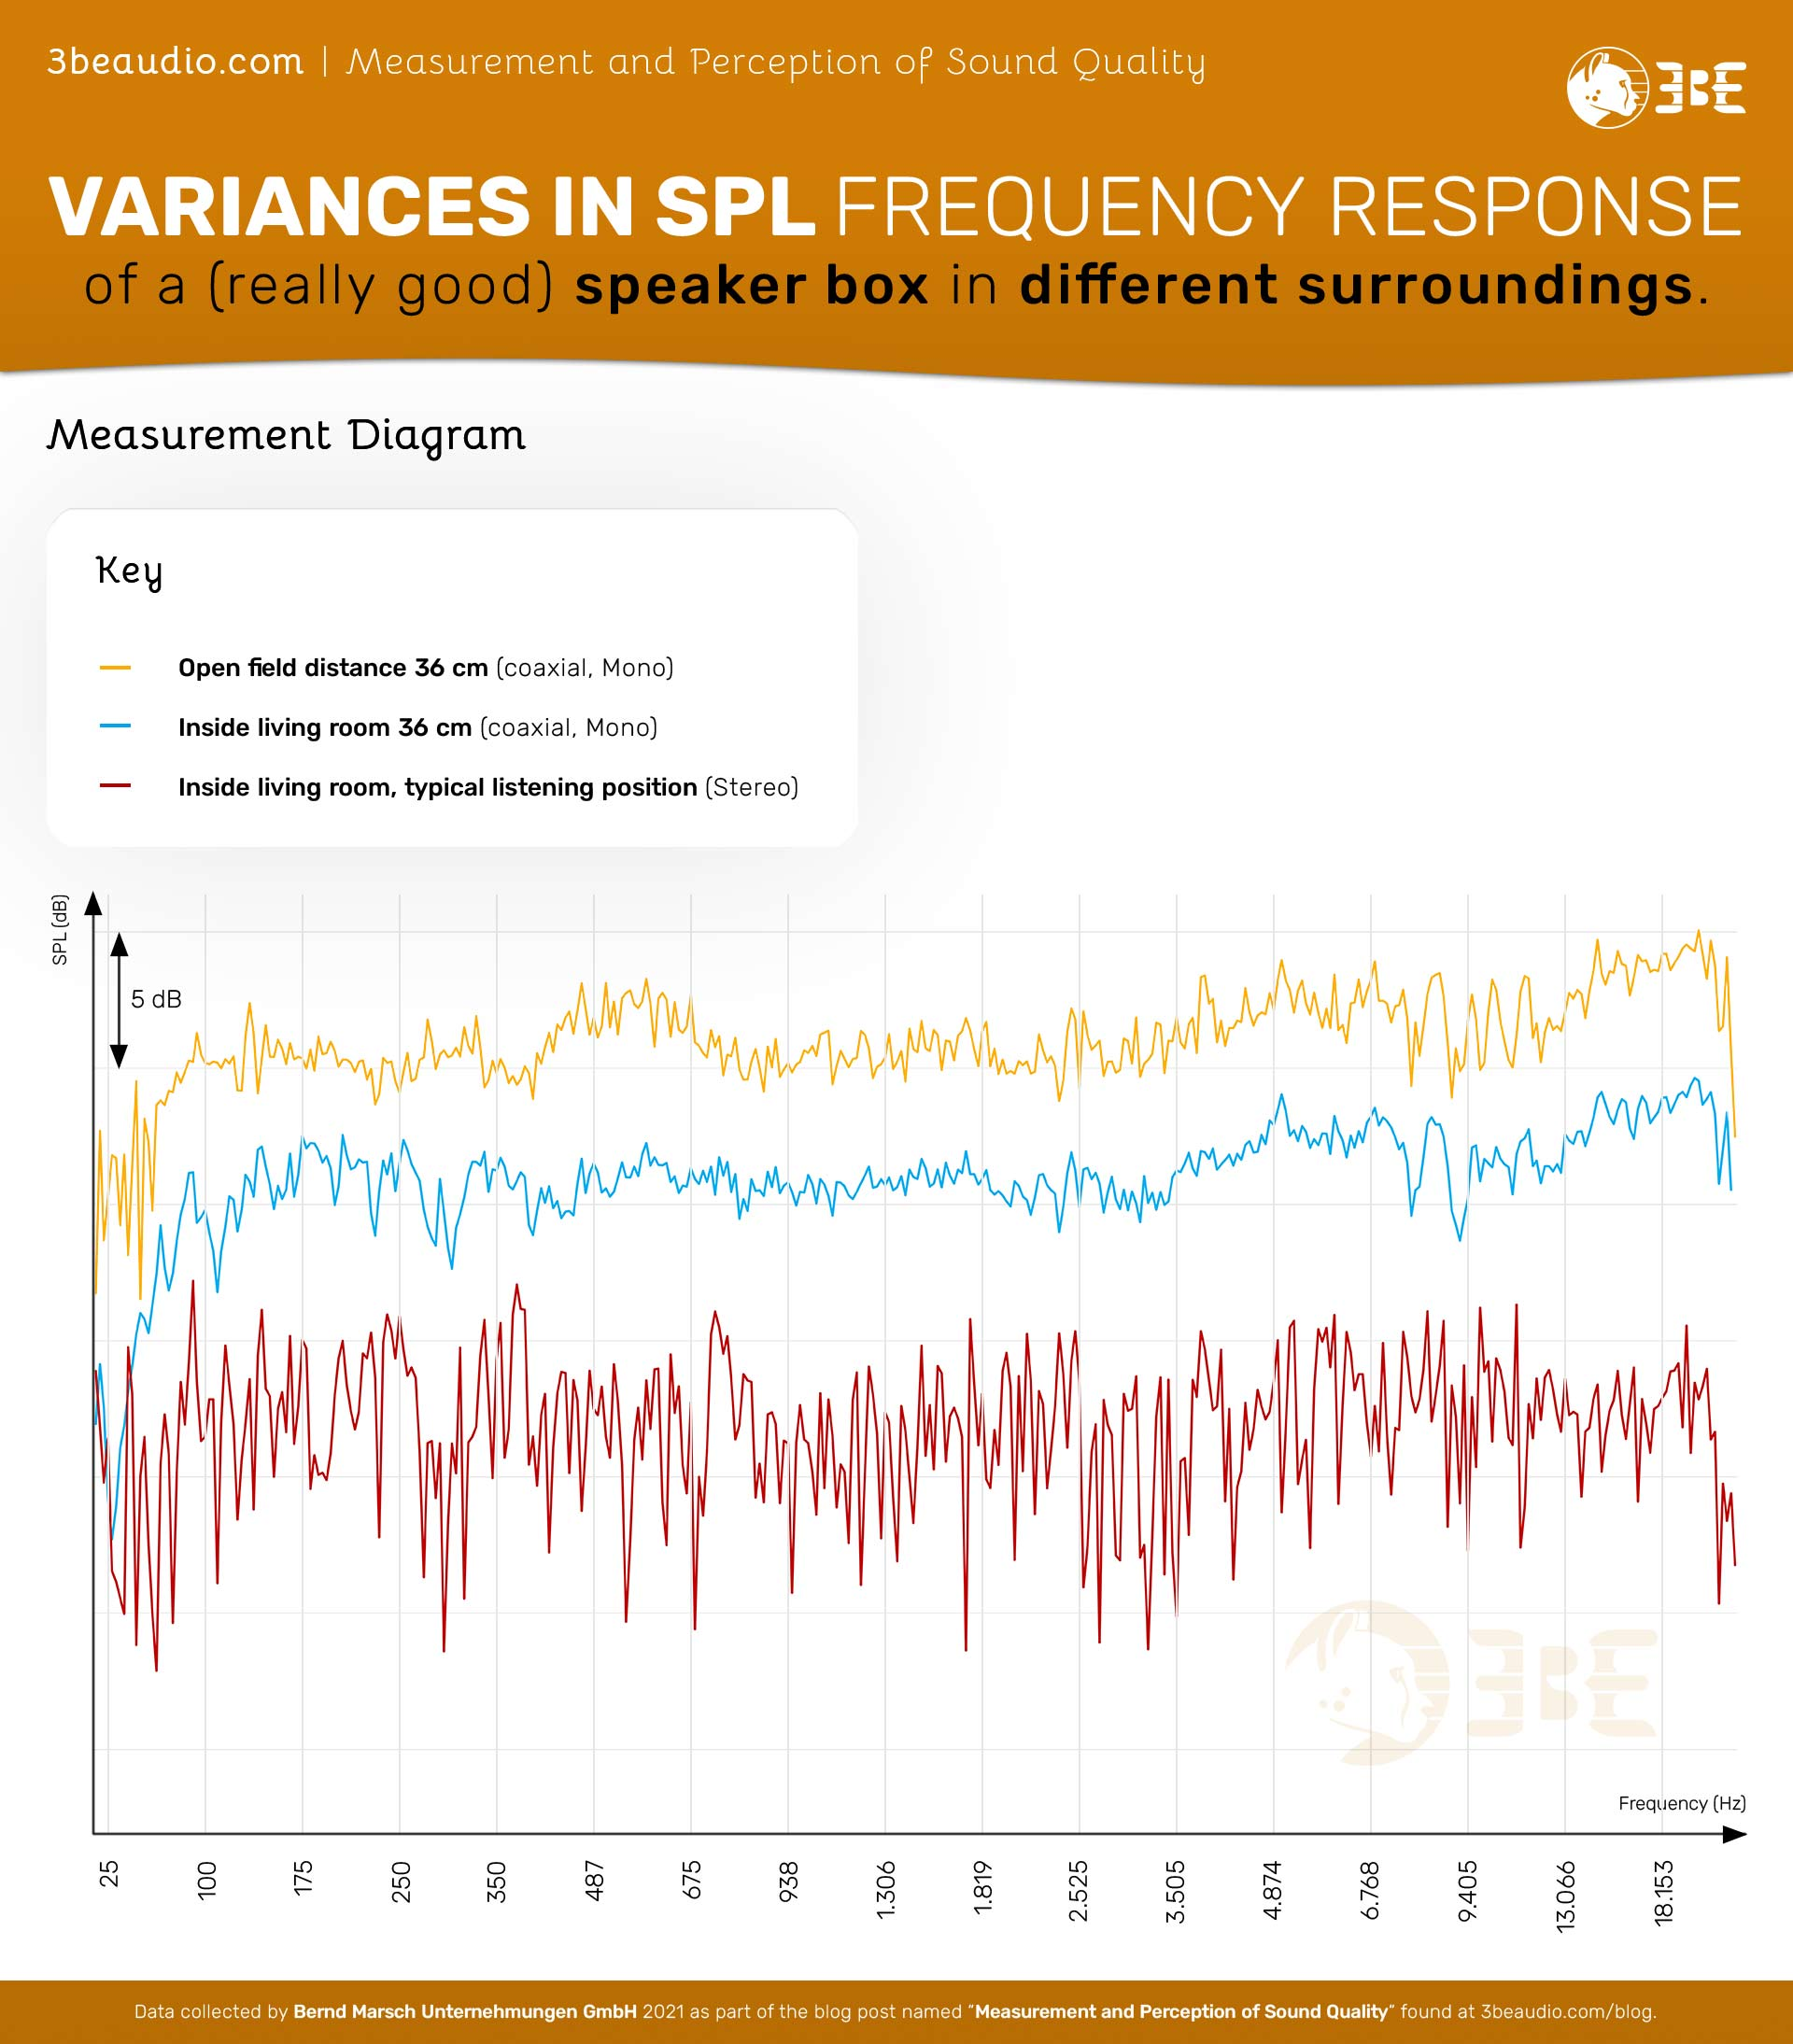 Measurement and Perception of Sound Quality | Variances in SPL Frequency Response of a (really good) speaker box in different surroundings.